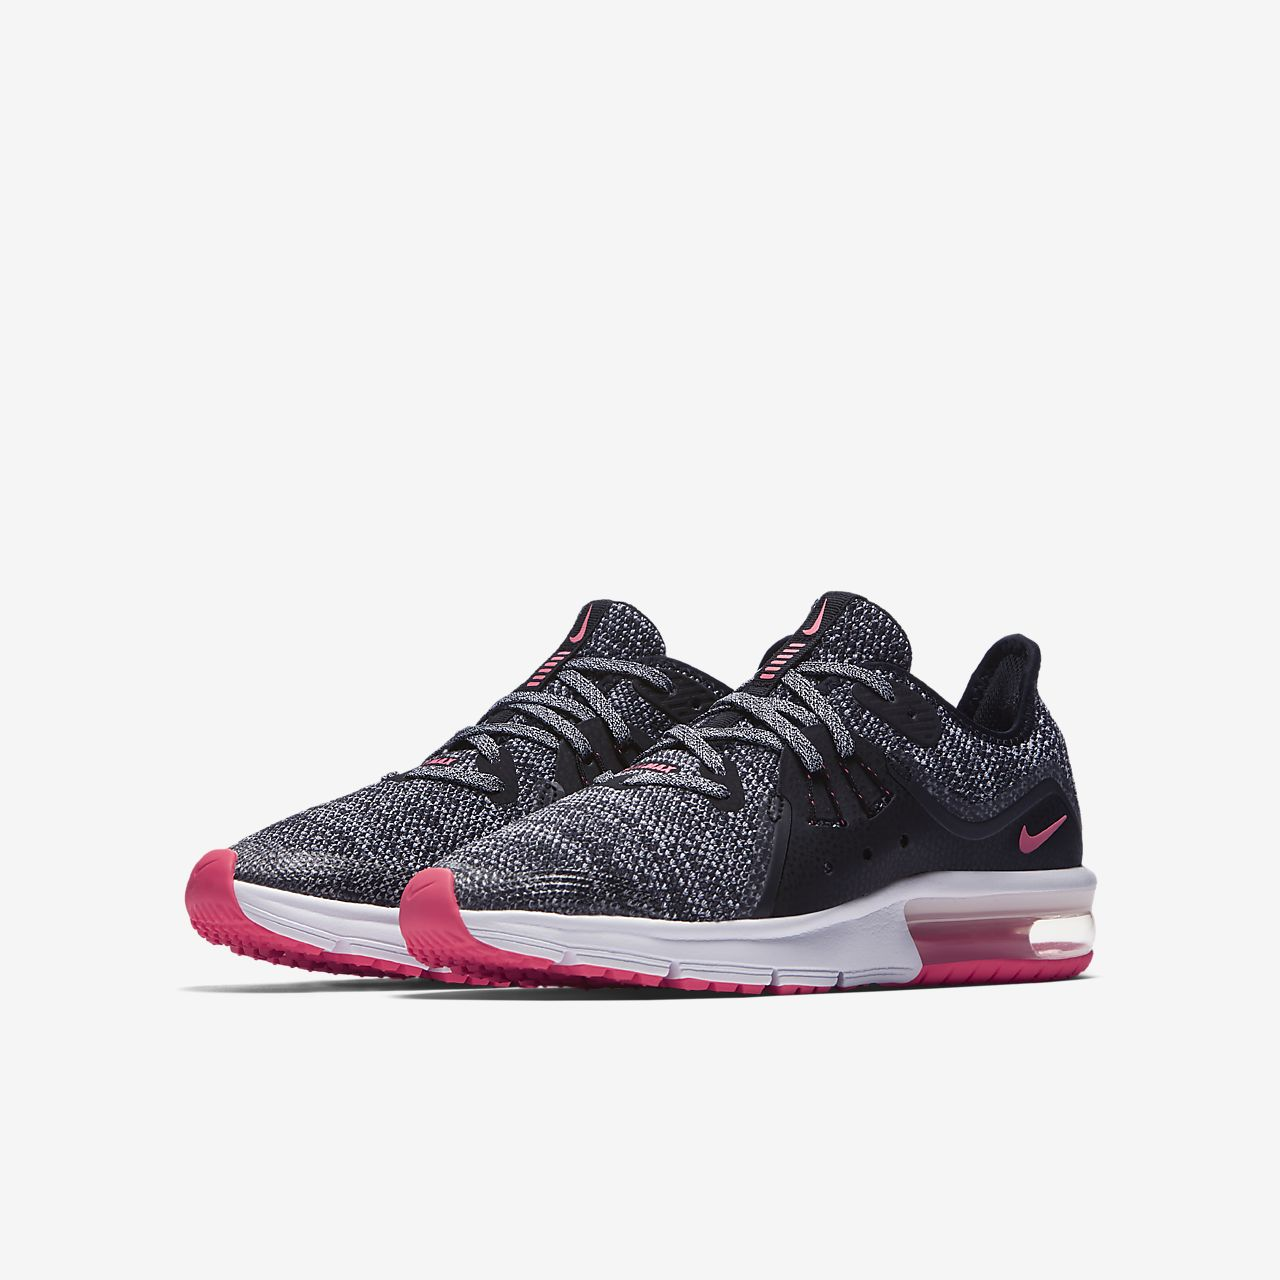 low priced fbbd0 d9dc2 Chaussures Nike Air Max Sequent noires enfant